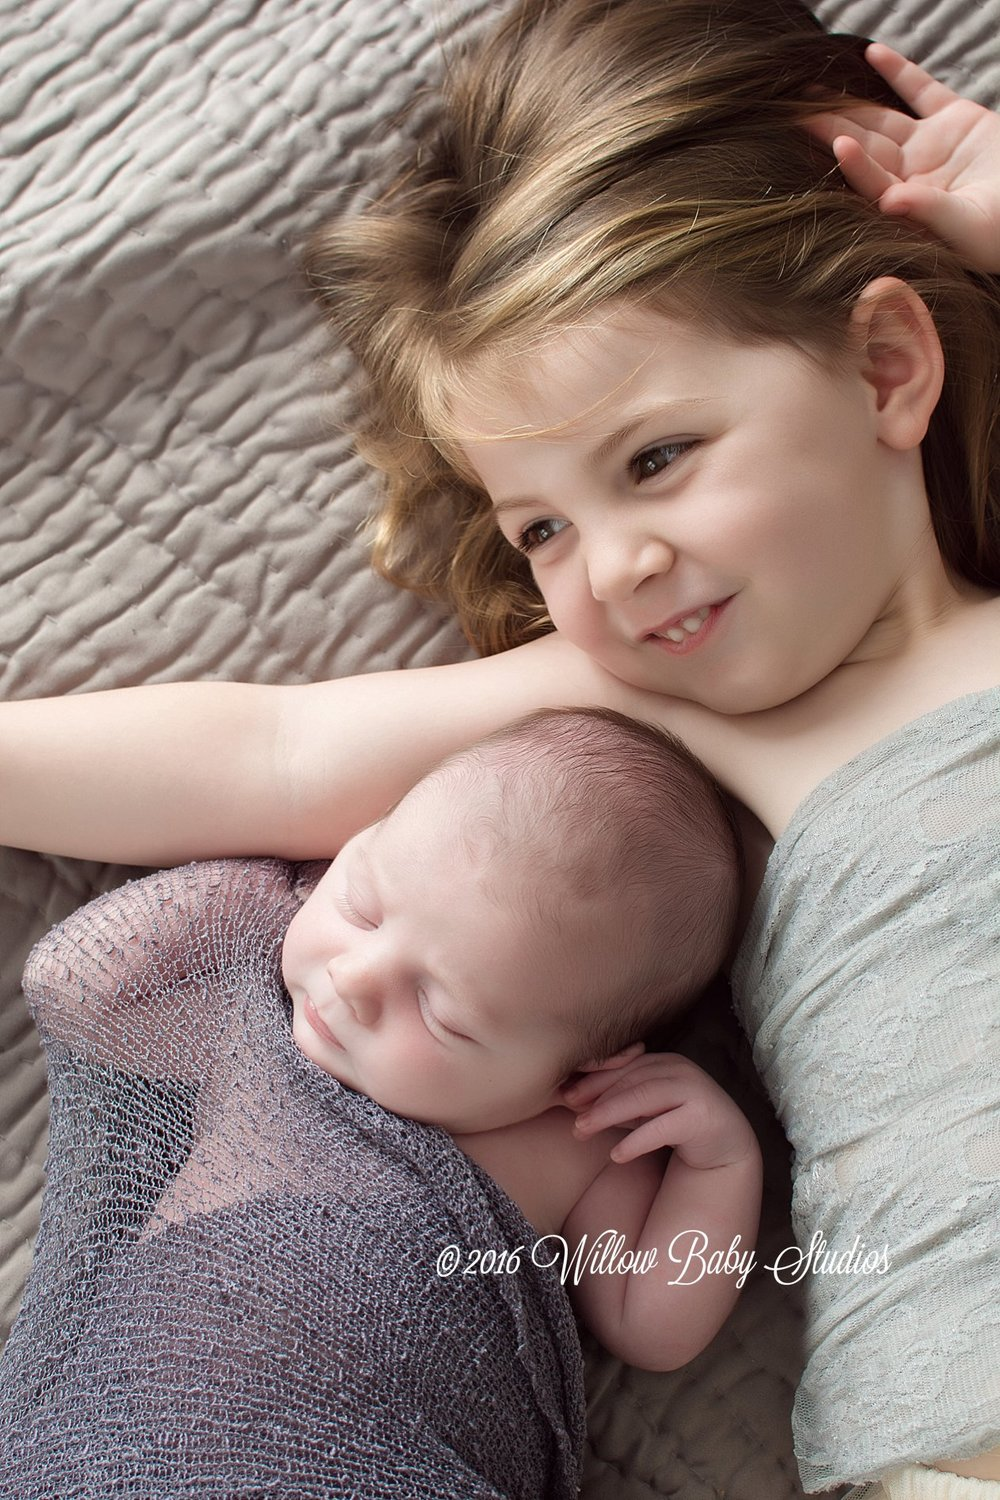 three year old sister snuggling with newborn brother